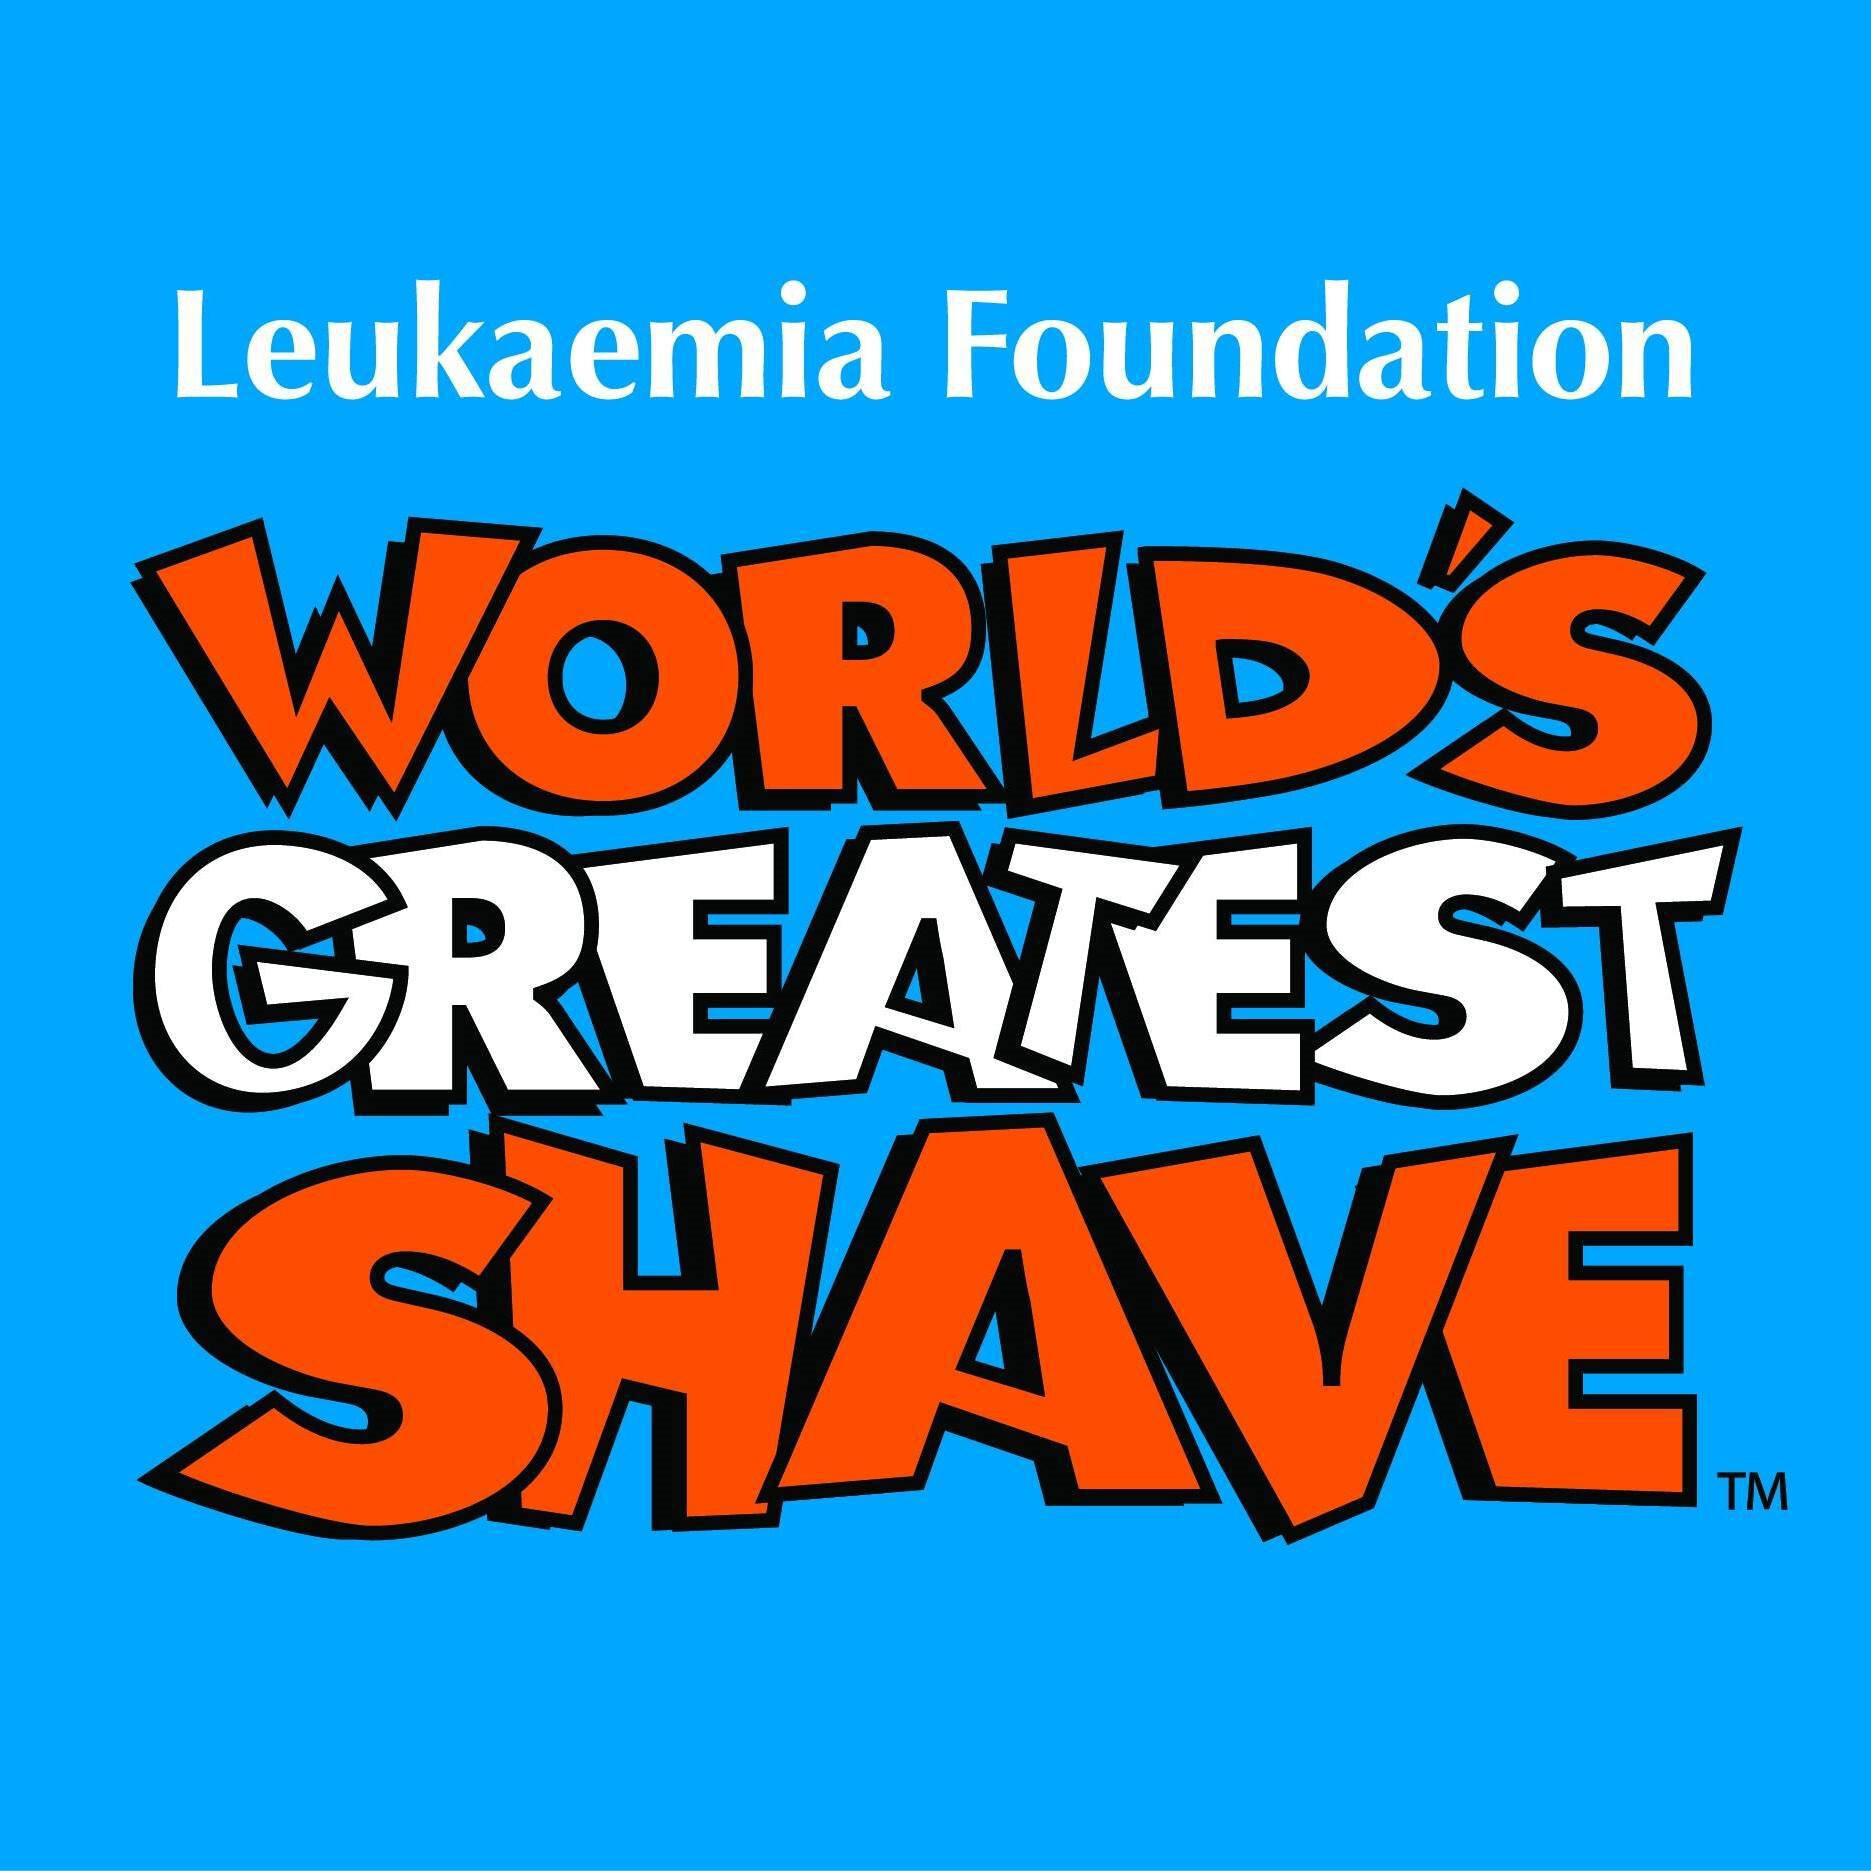 WORLD'S GREATEST SHAVE - What did your child ruin? - What'd you get stuck in?